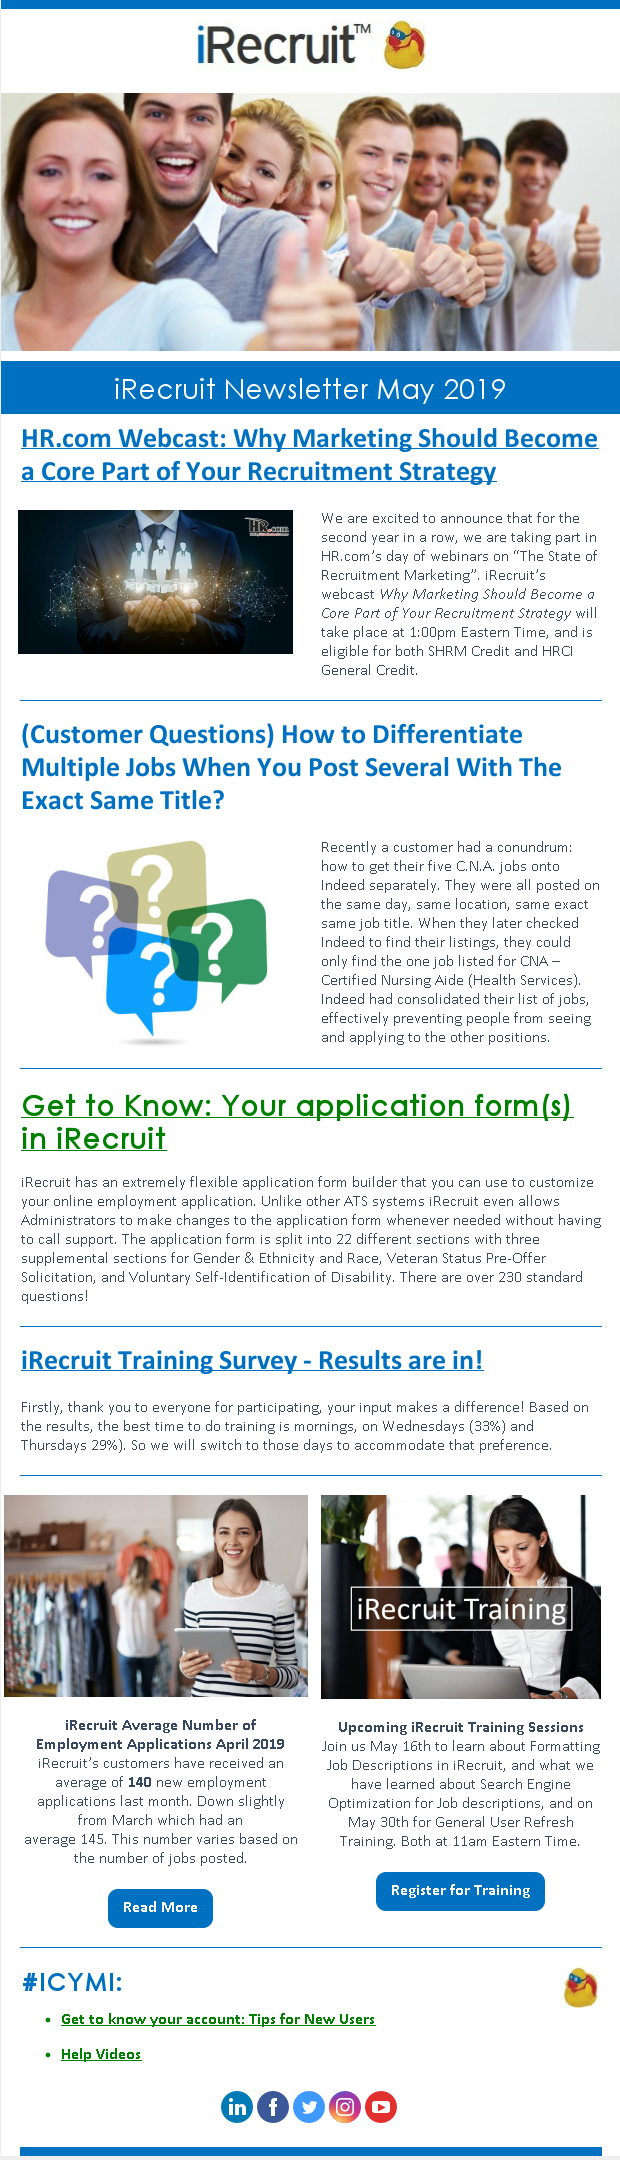 iRecruit Customer Newsletter May 2019